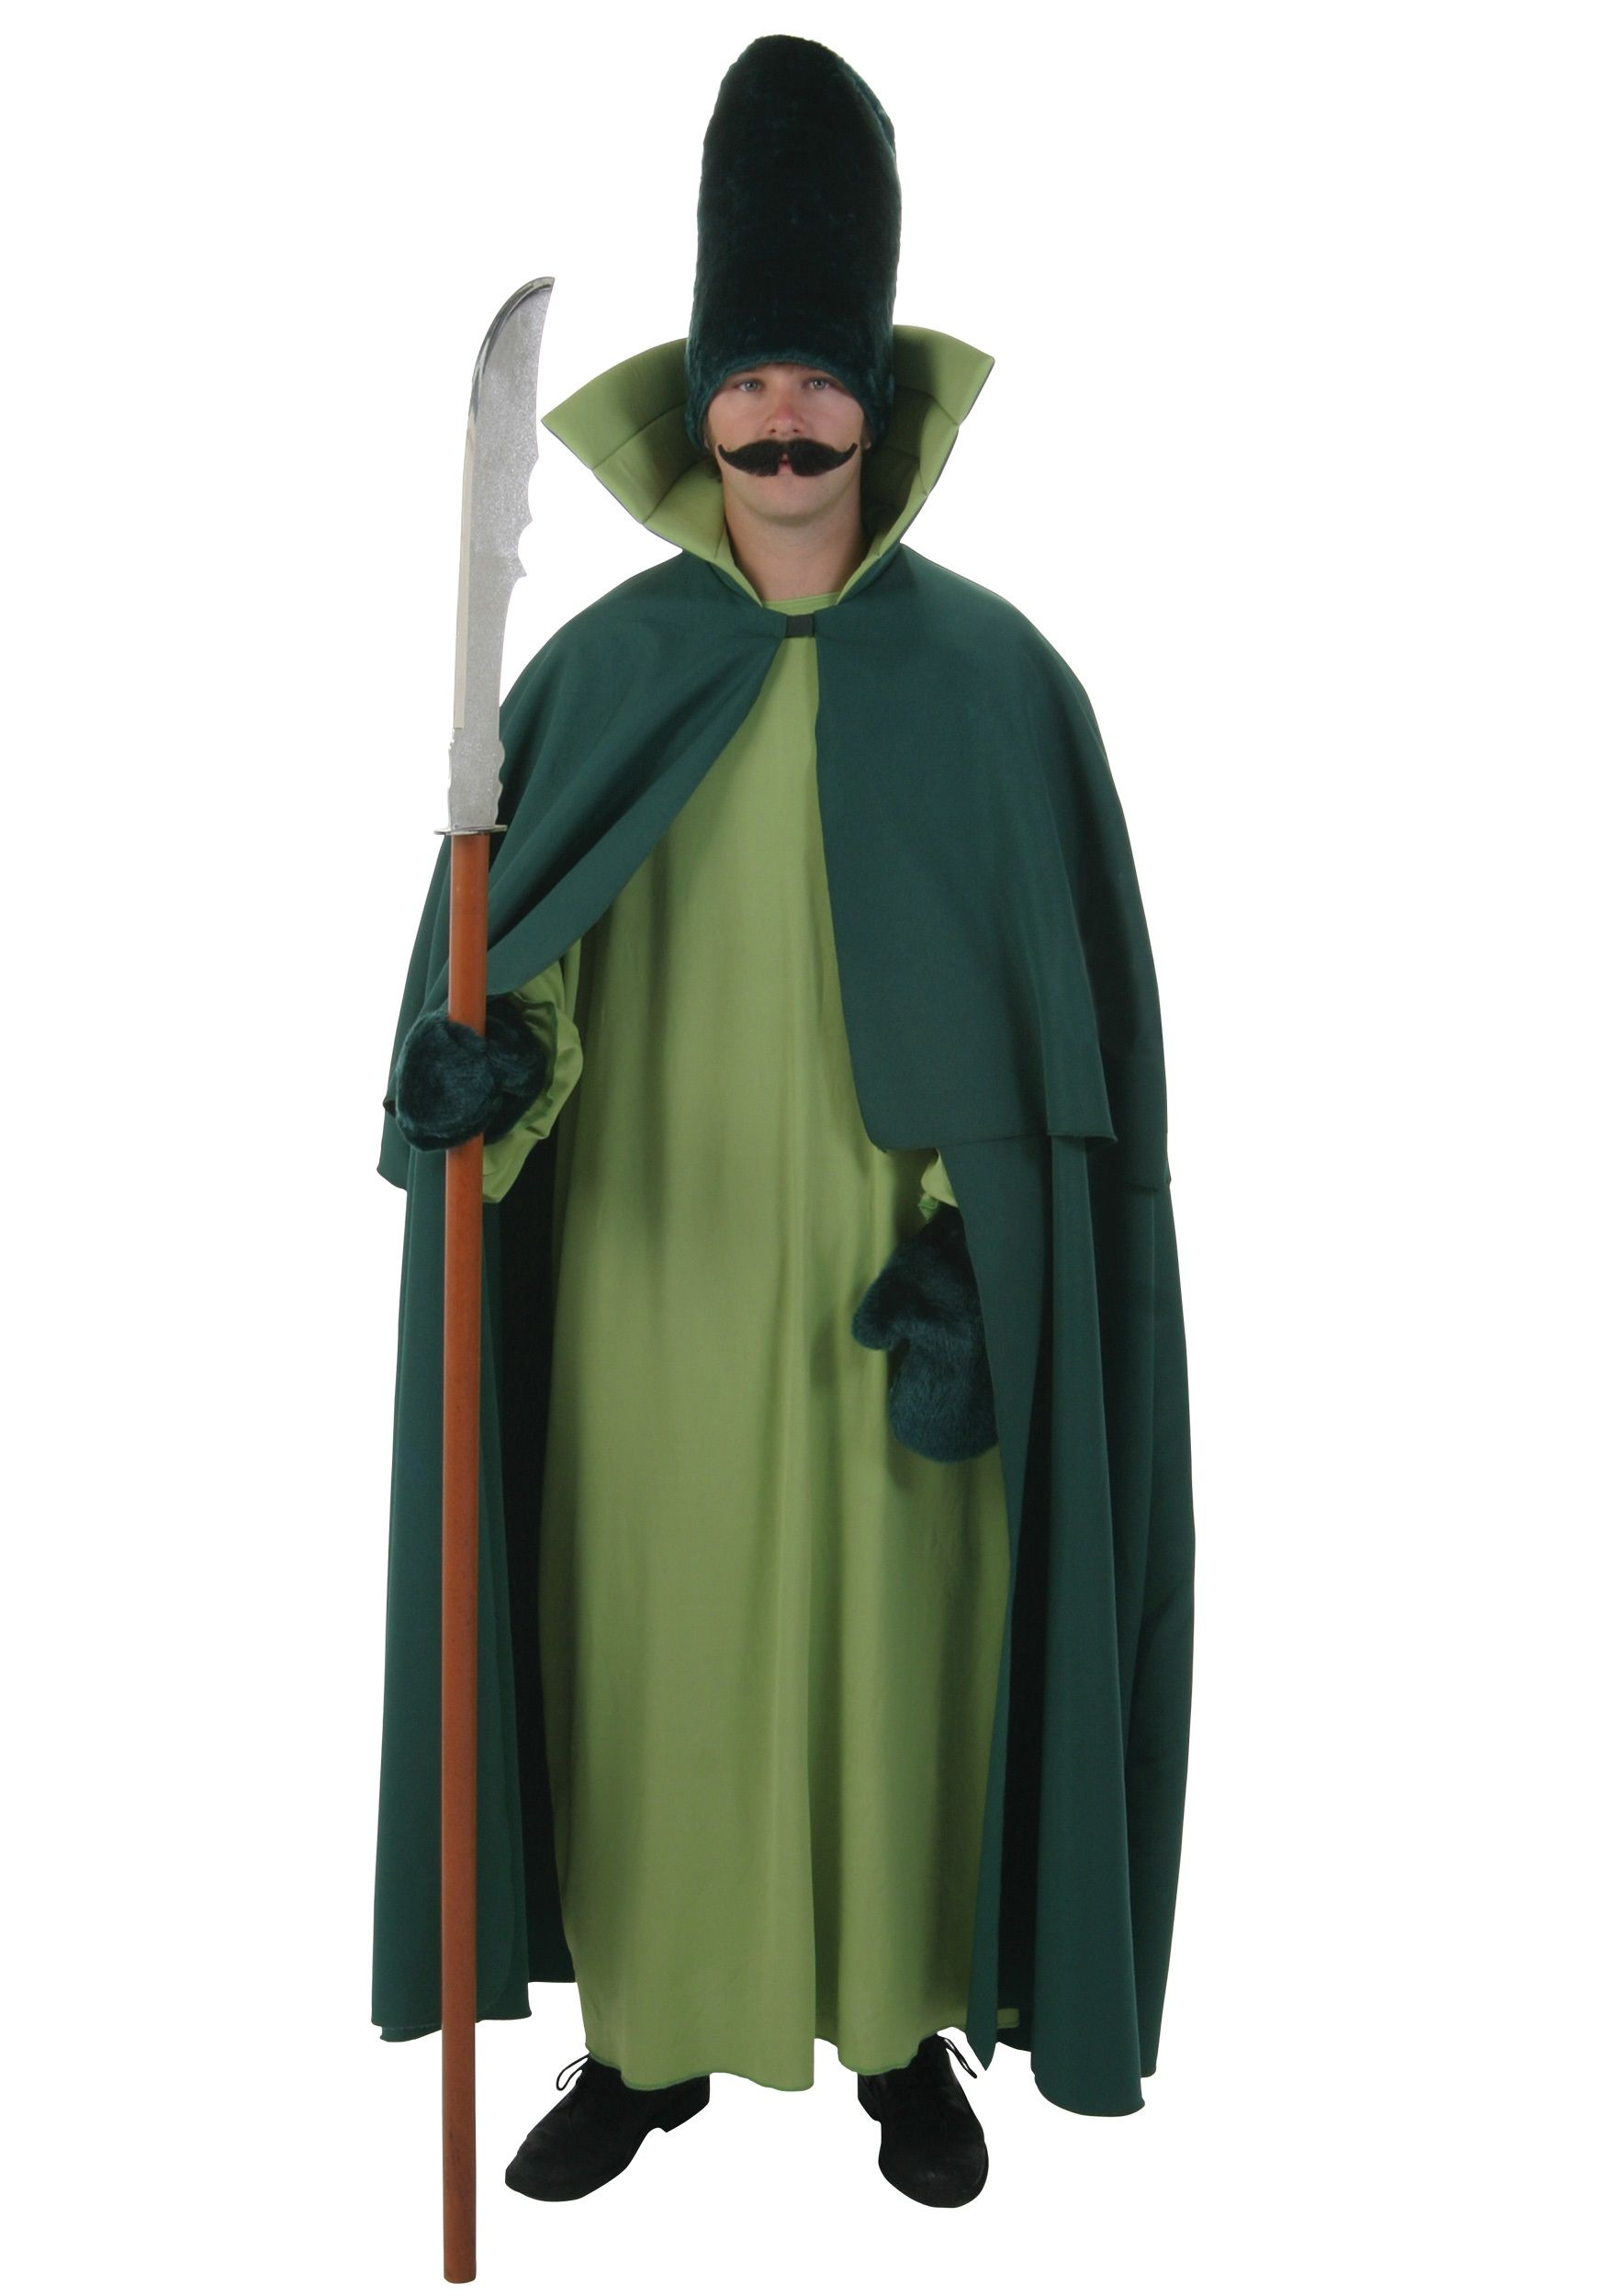 Adult Green Guard Costume | Emerald city, Costumes and Halloween ideas